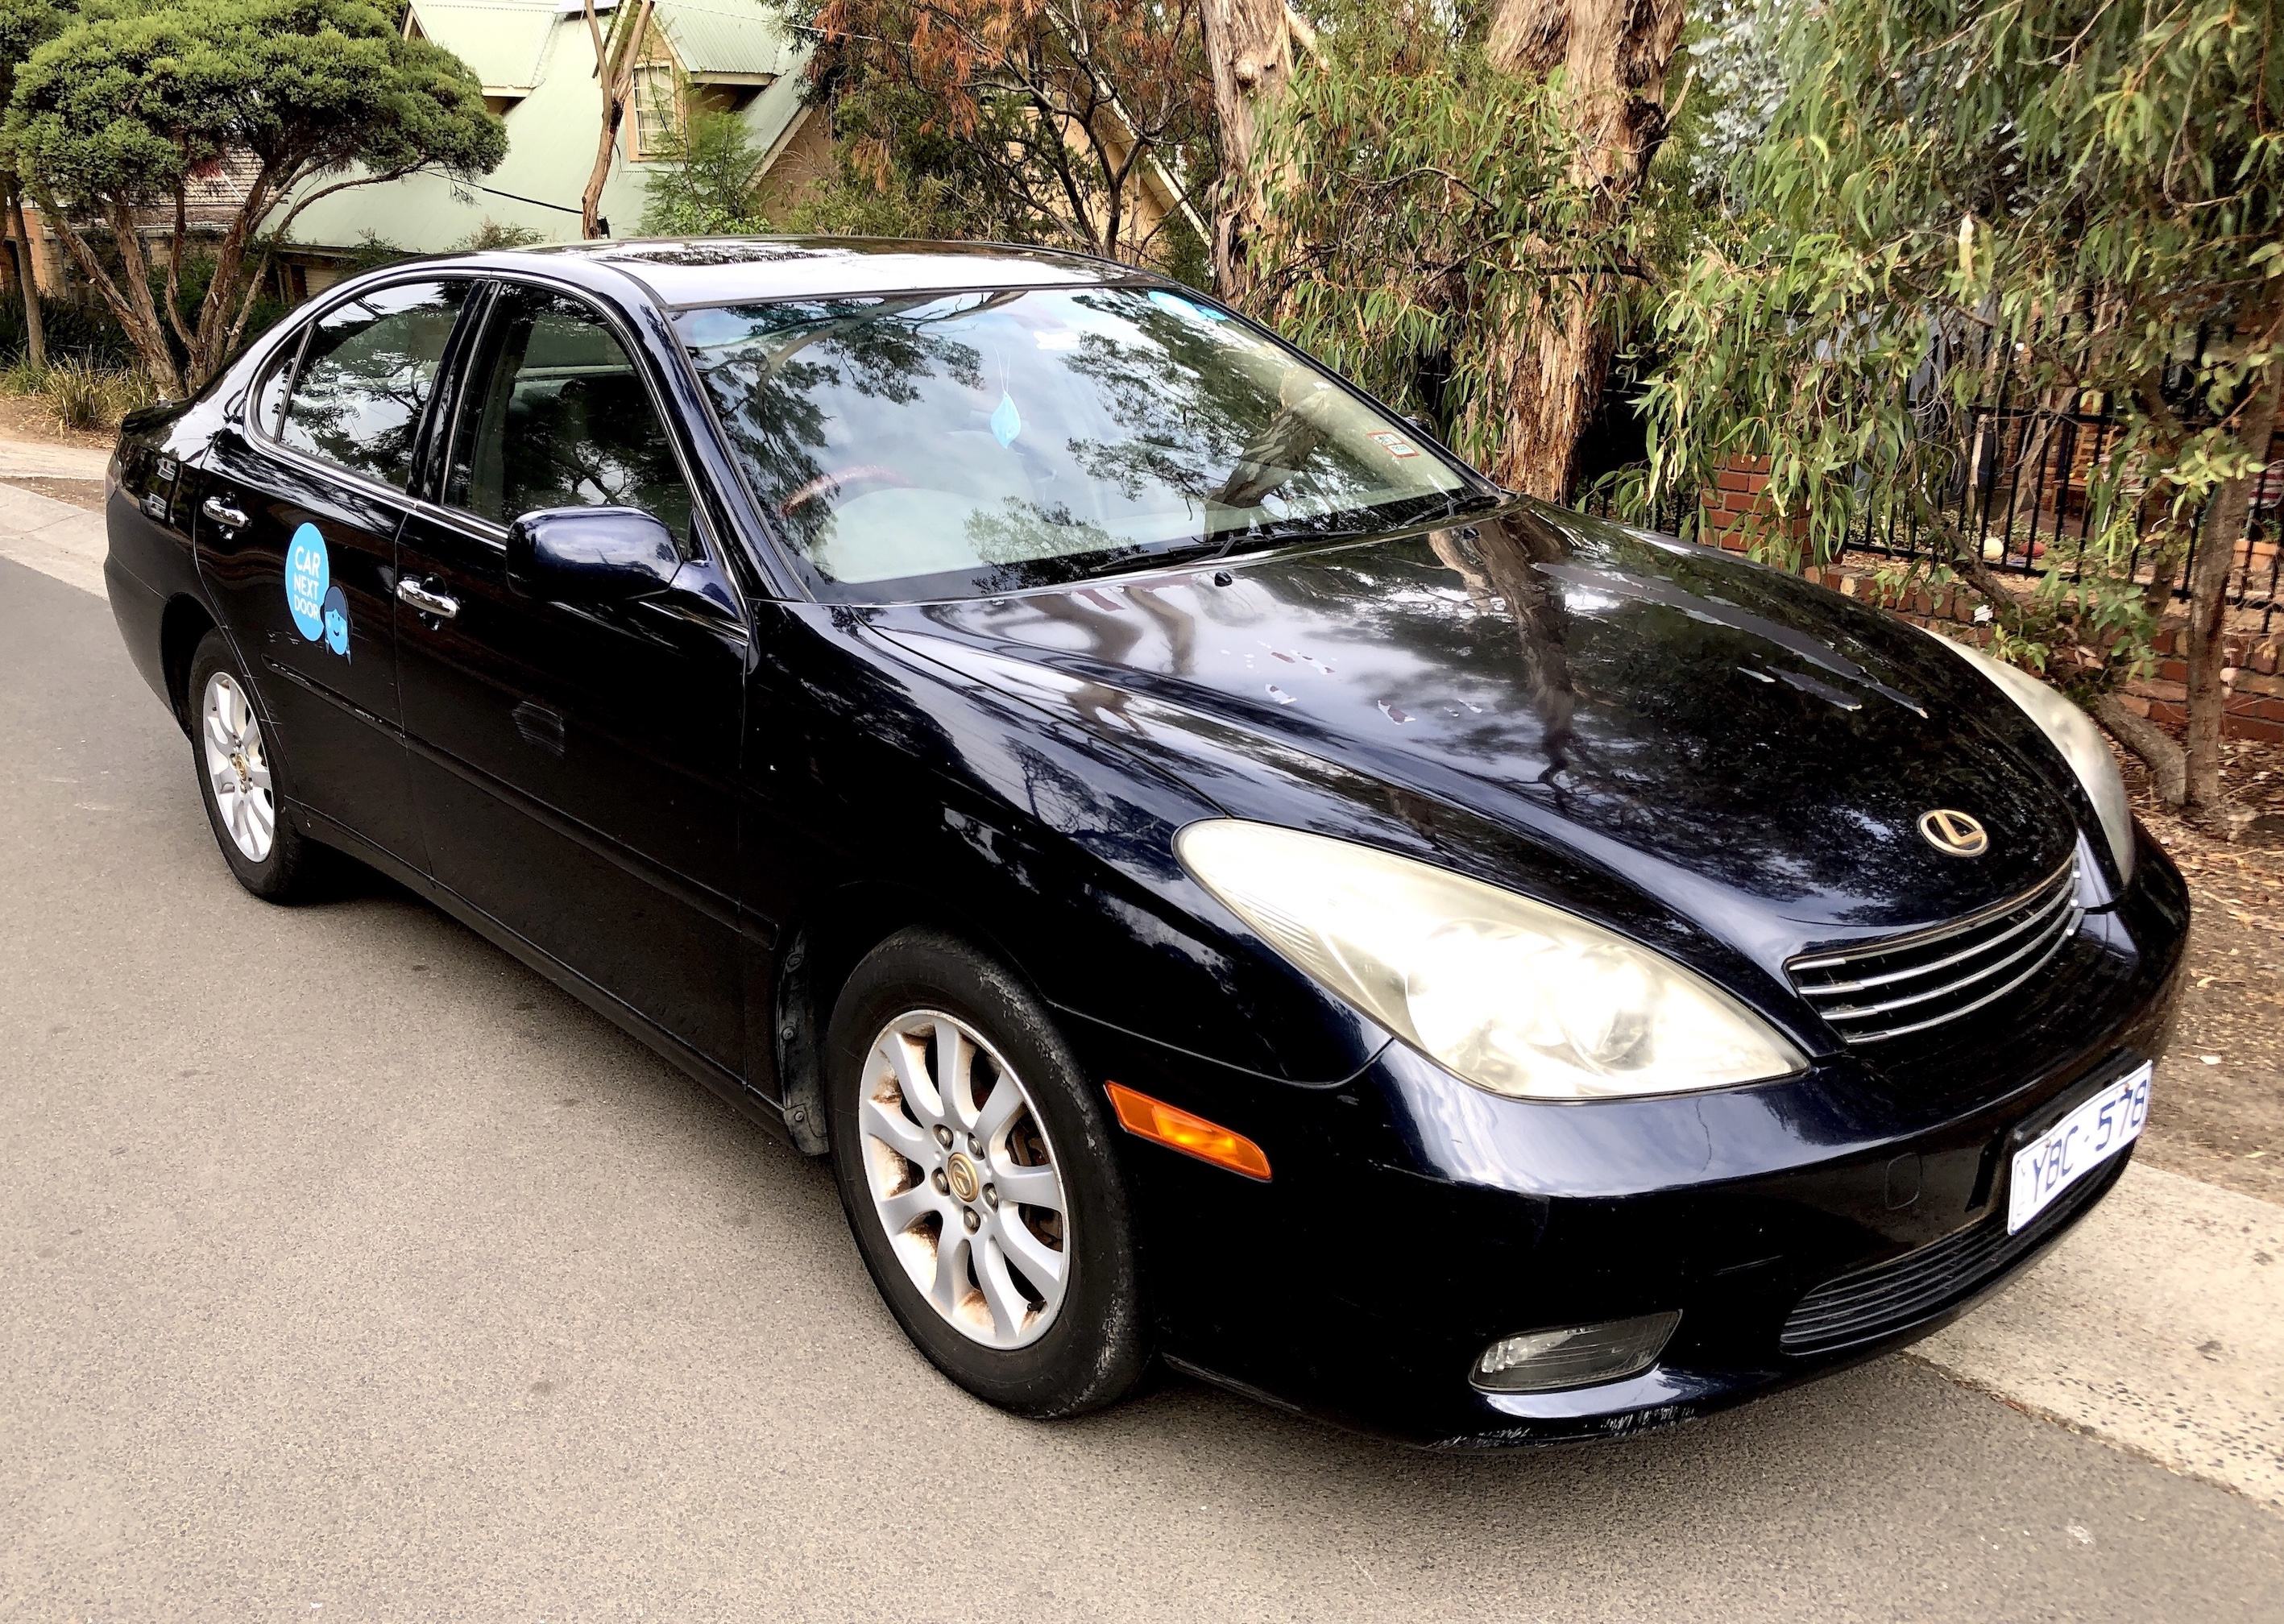 Picture of Snjezana's 2002 Lexus ES